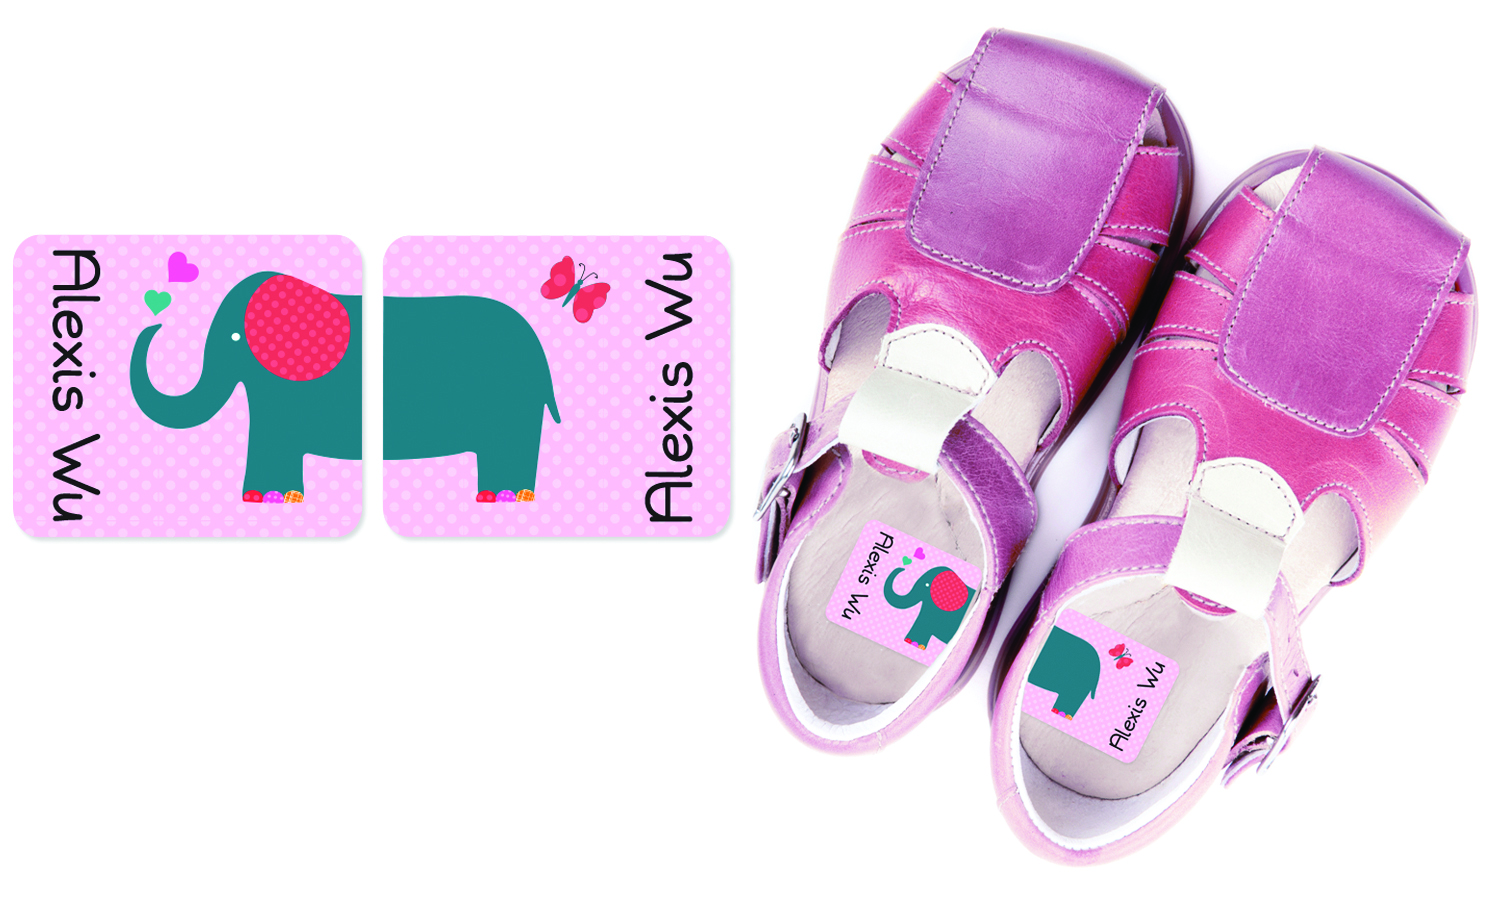 Personalized preschool shoe labels that help tell right from left. So smart!